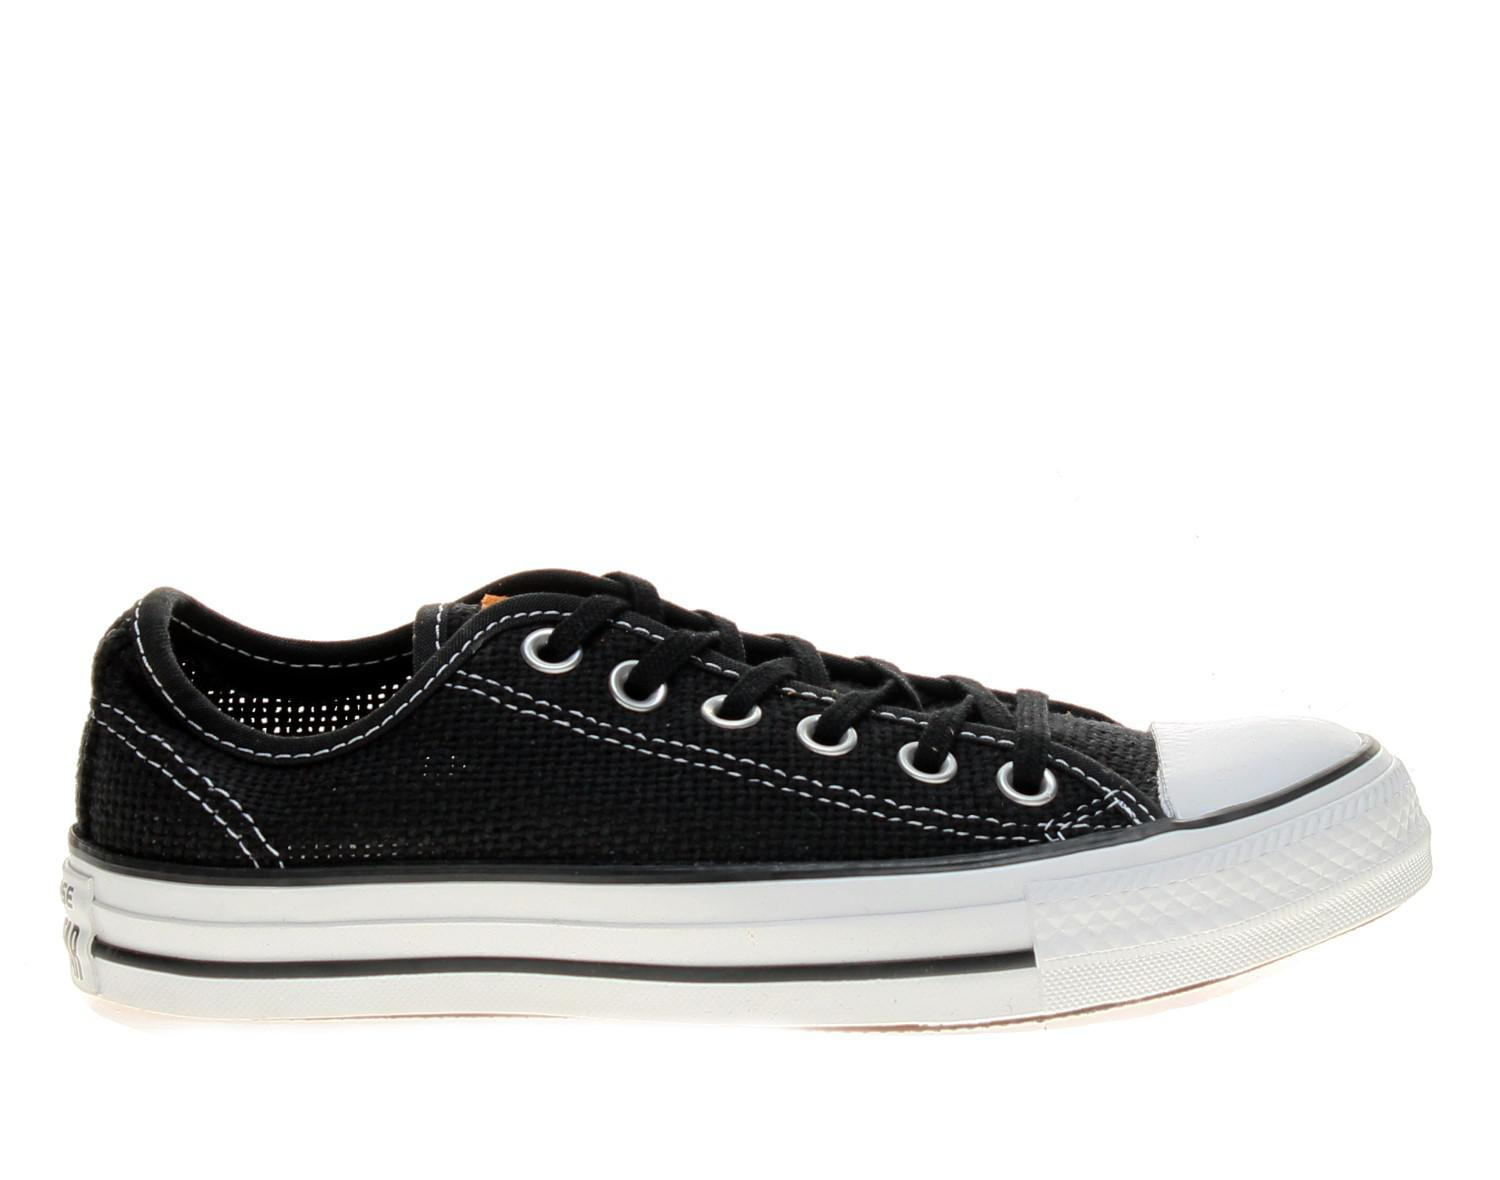 3b08252718a Lyst - Converse Chuck Taylor All Star Ox Woven Low Top Sneakers Size ...